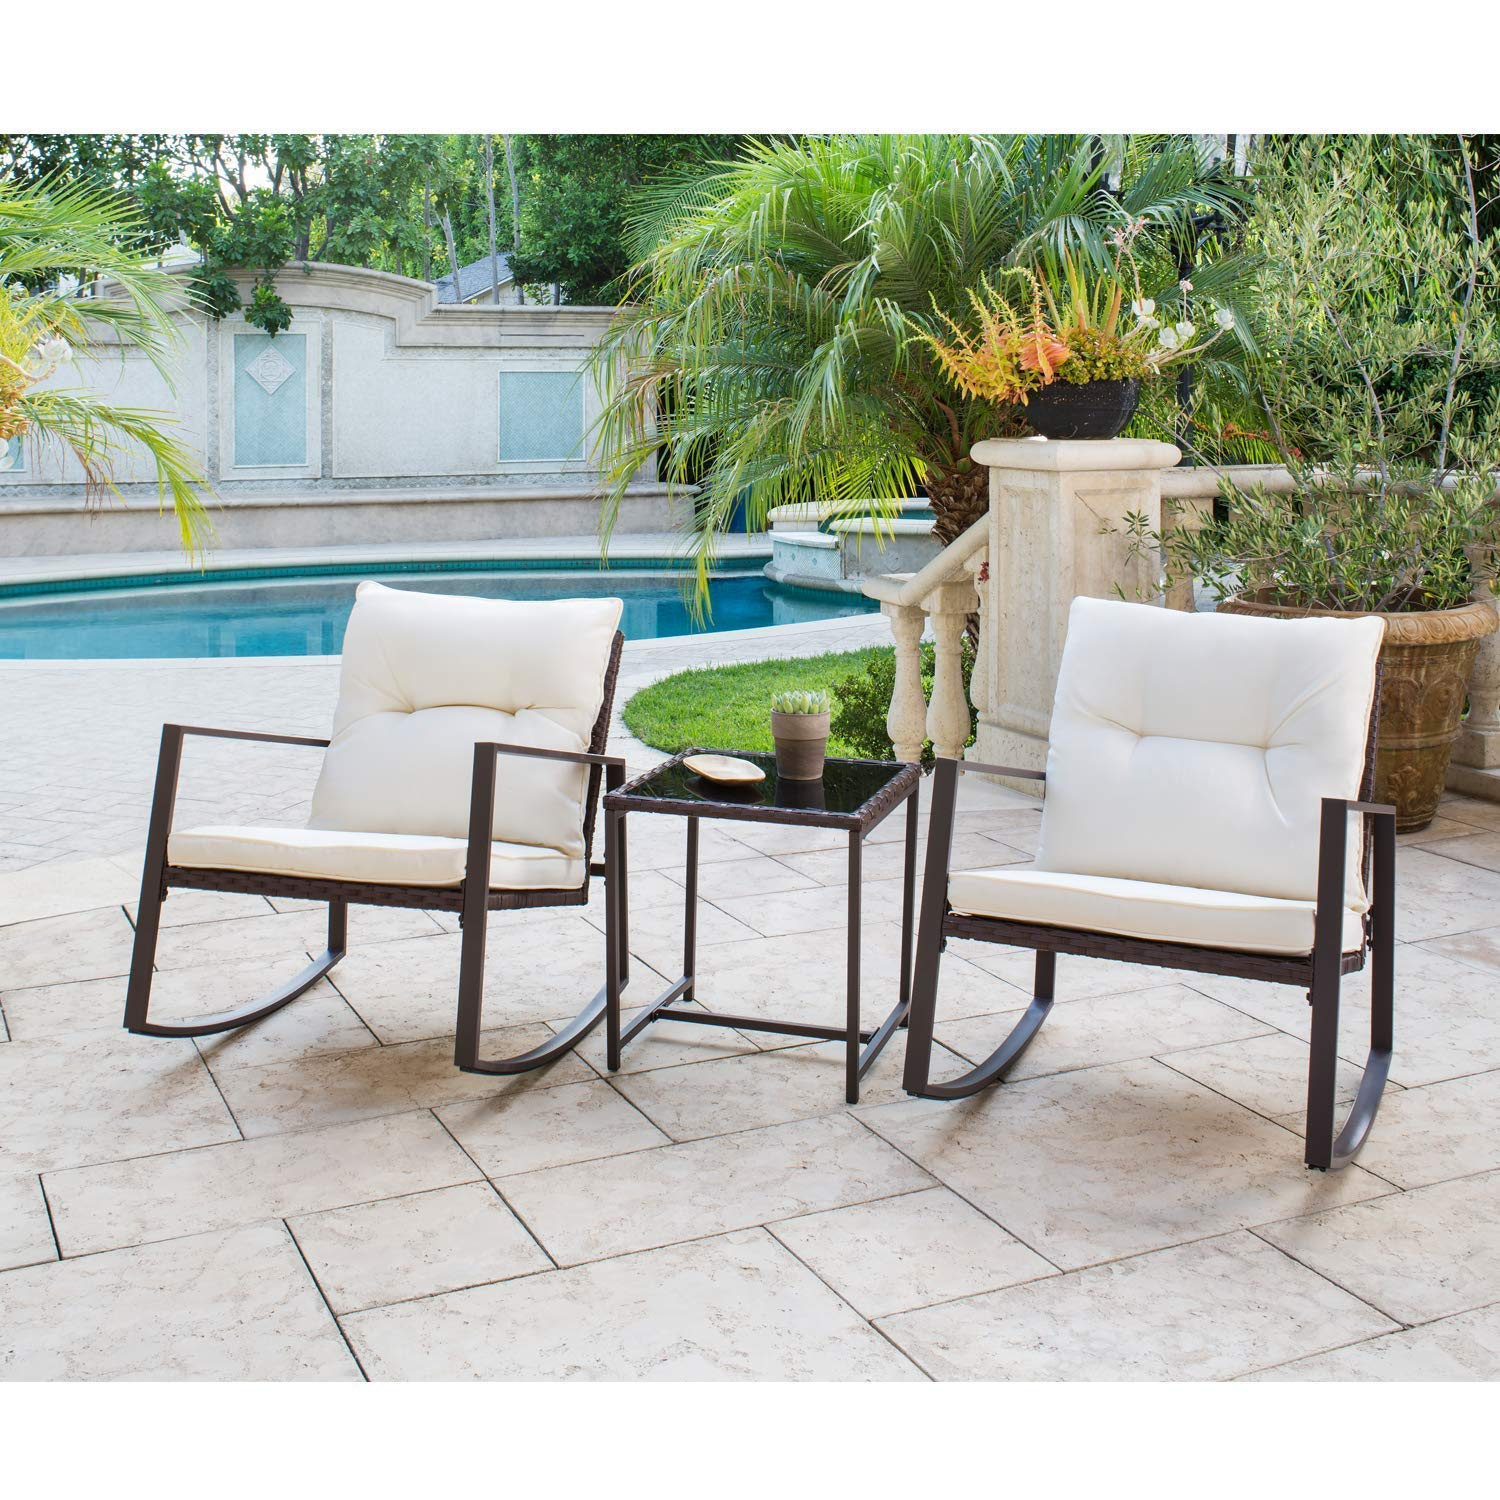 Suncrown Outdoor 3-Piece Rocking Wicker Bistro Set: Brown Wicker Furniture - Two Chairs with Glass Coffee Table (Beige-White Cushion)